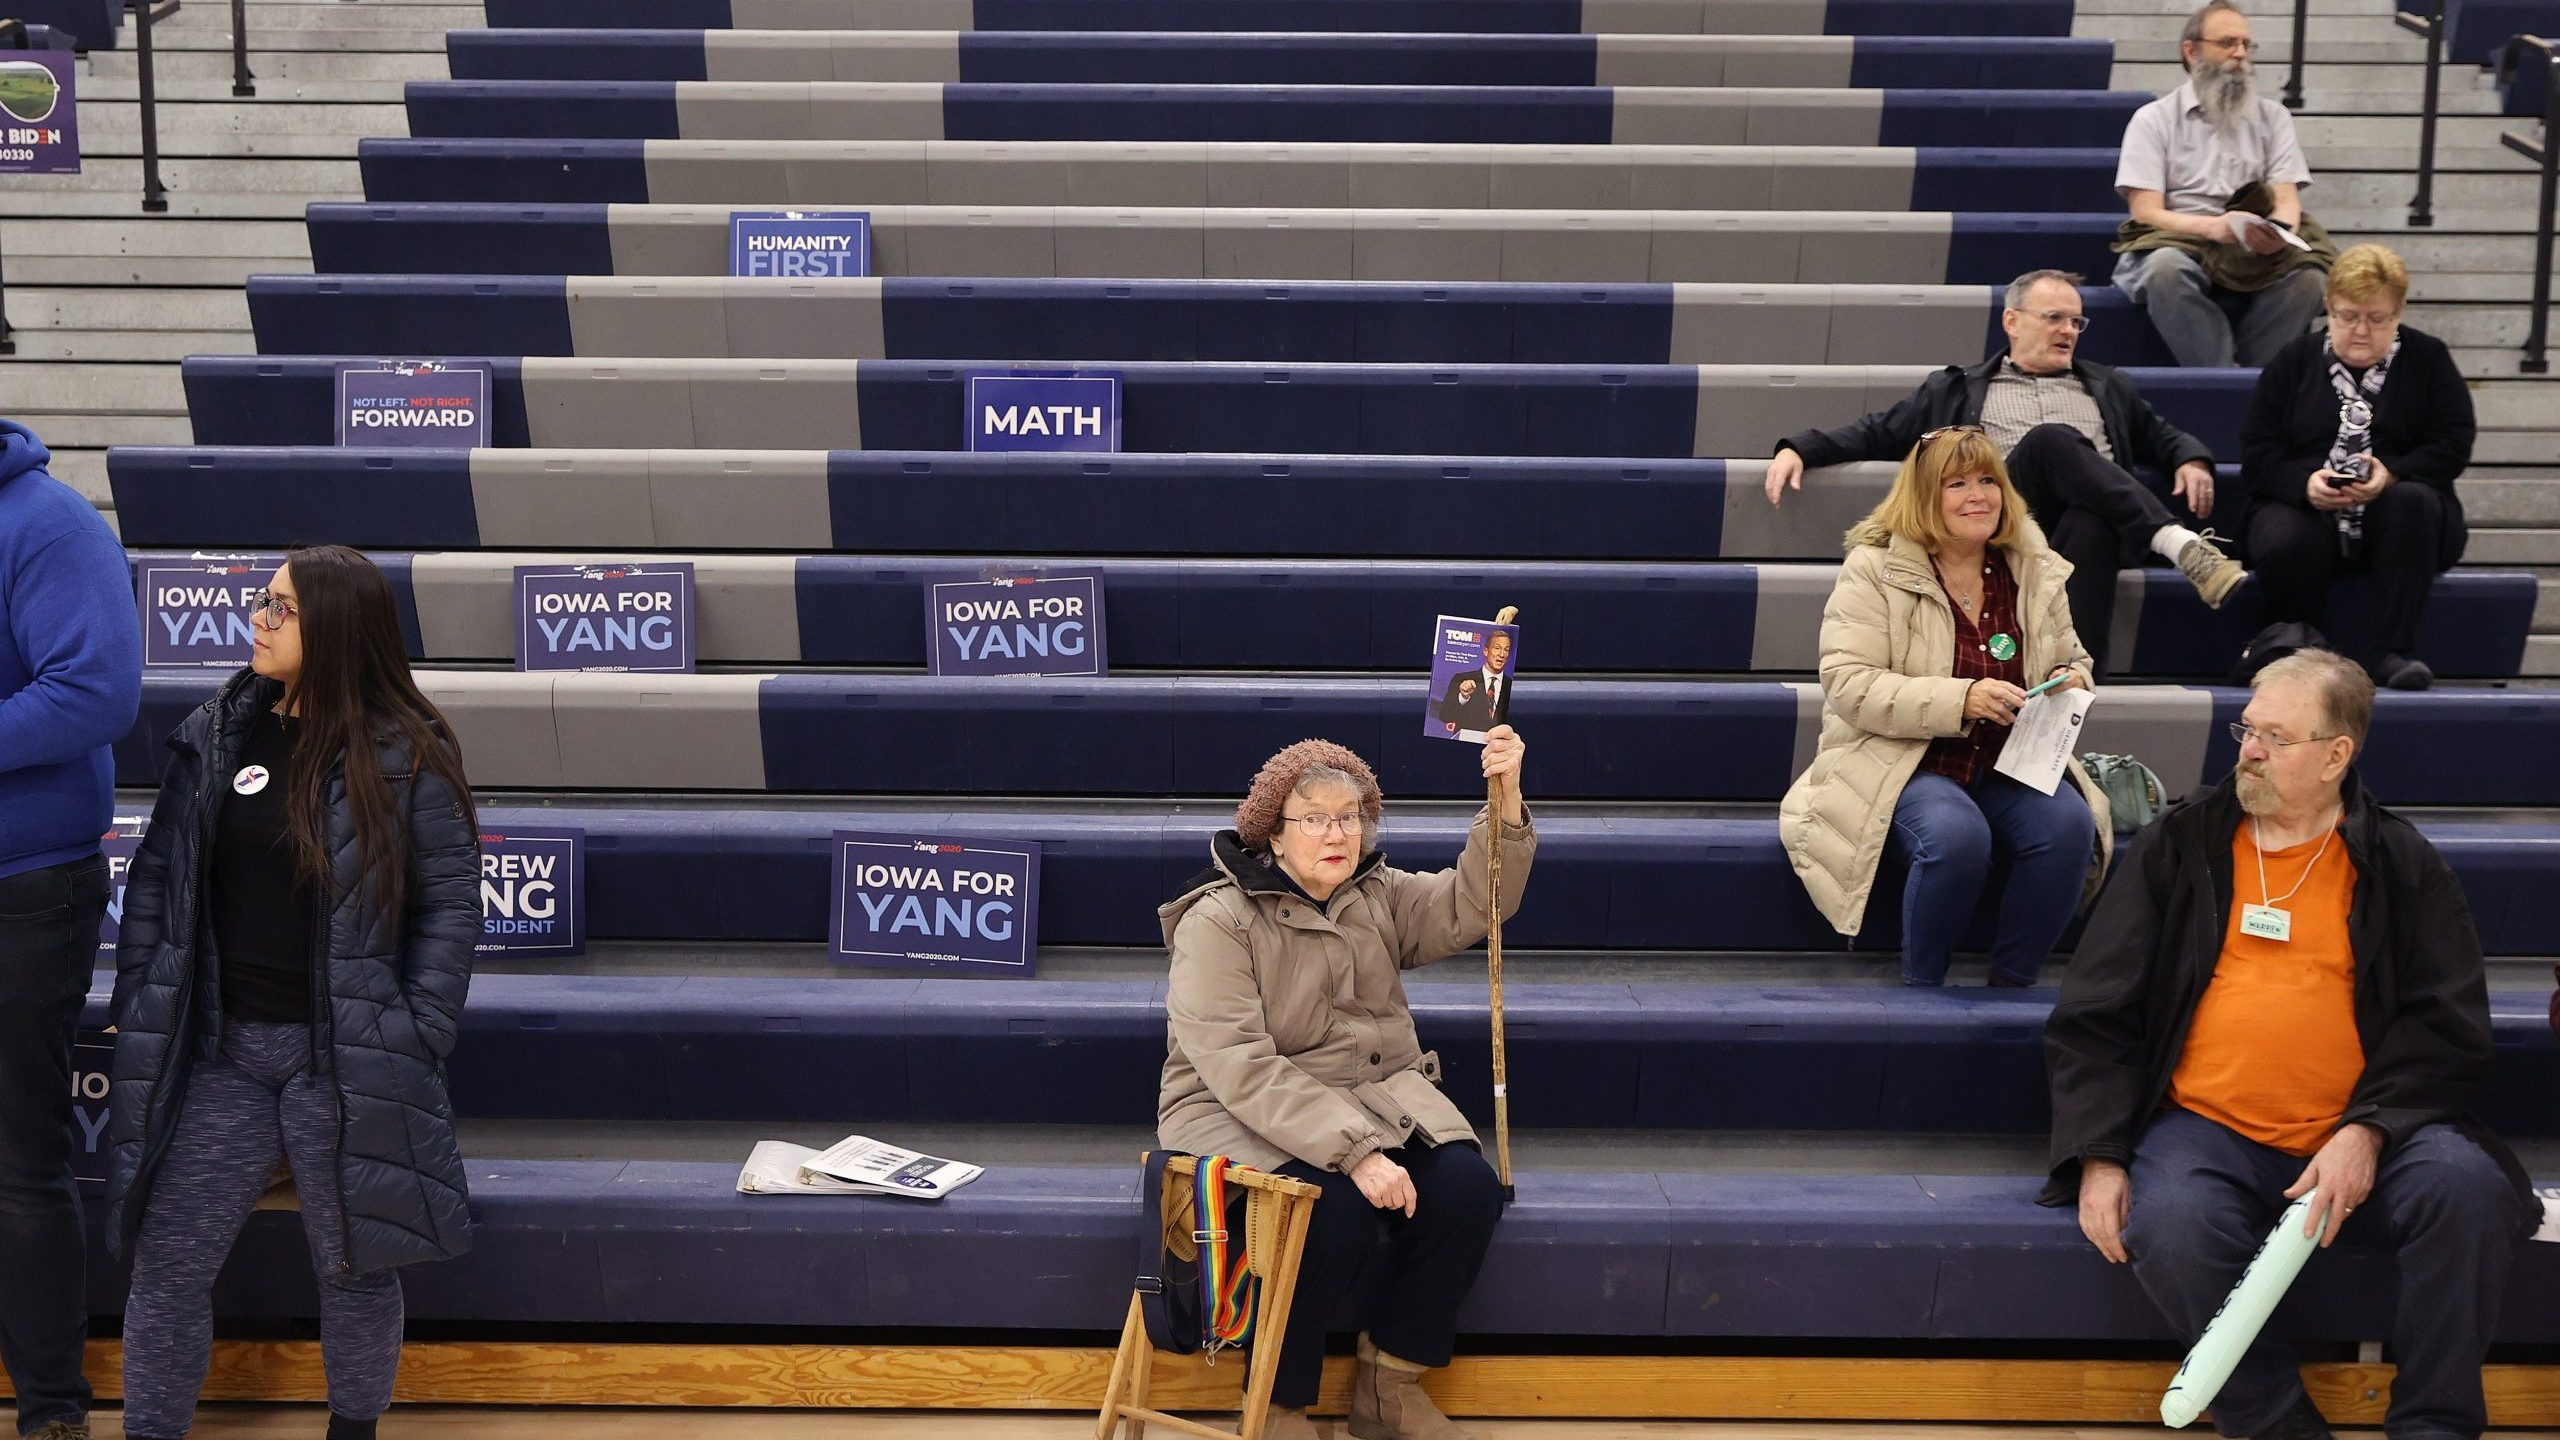 Supporters of Democratic presidential candidate Tom Steyer prepare to caucus at Roosevelt High School Feb. 03, 2020 in Des Moines, Iowa. (Credit: Chip Somodevilla/Getty Images)